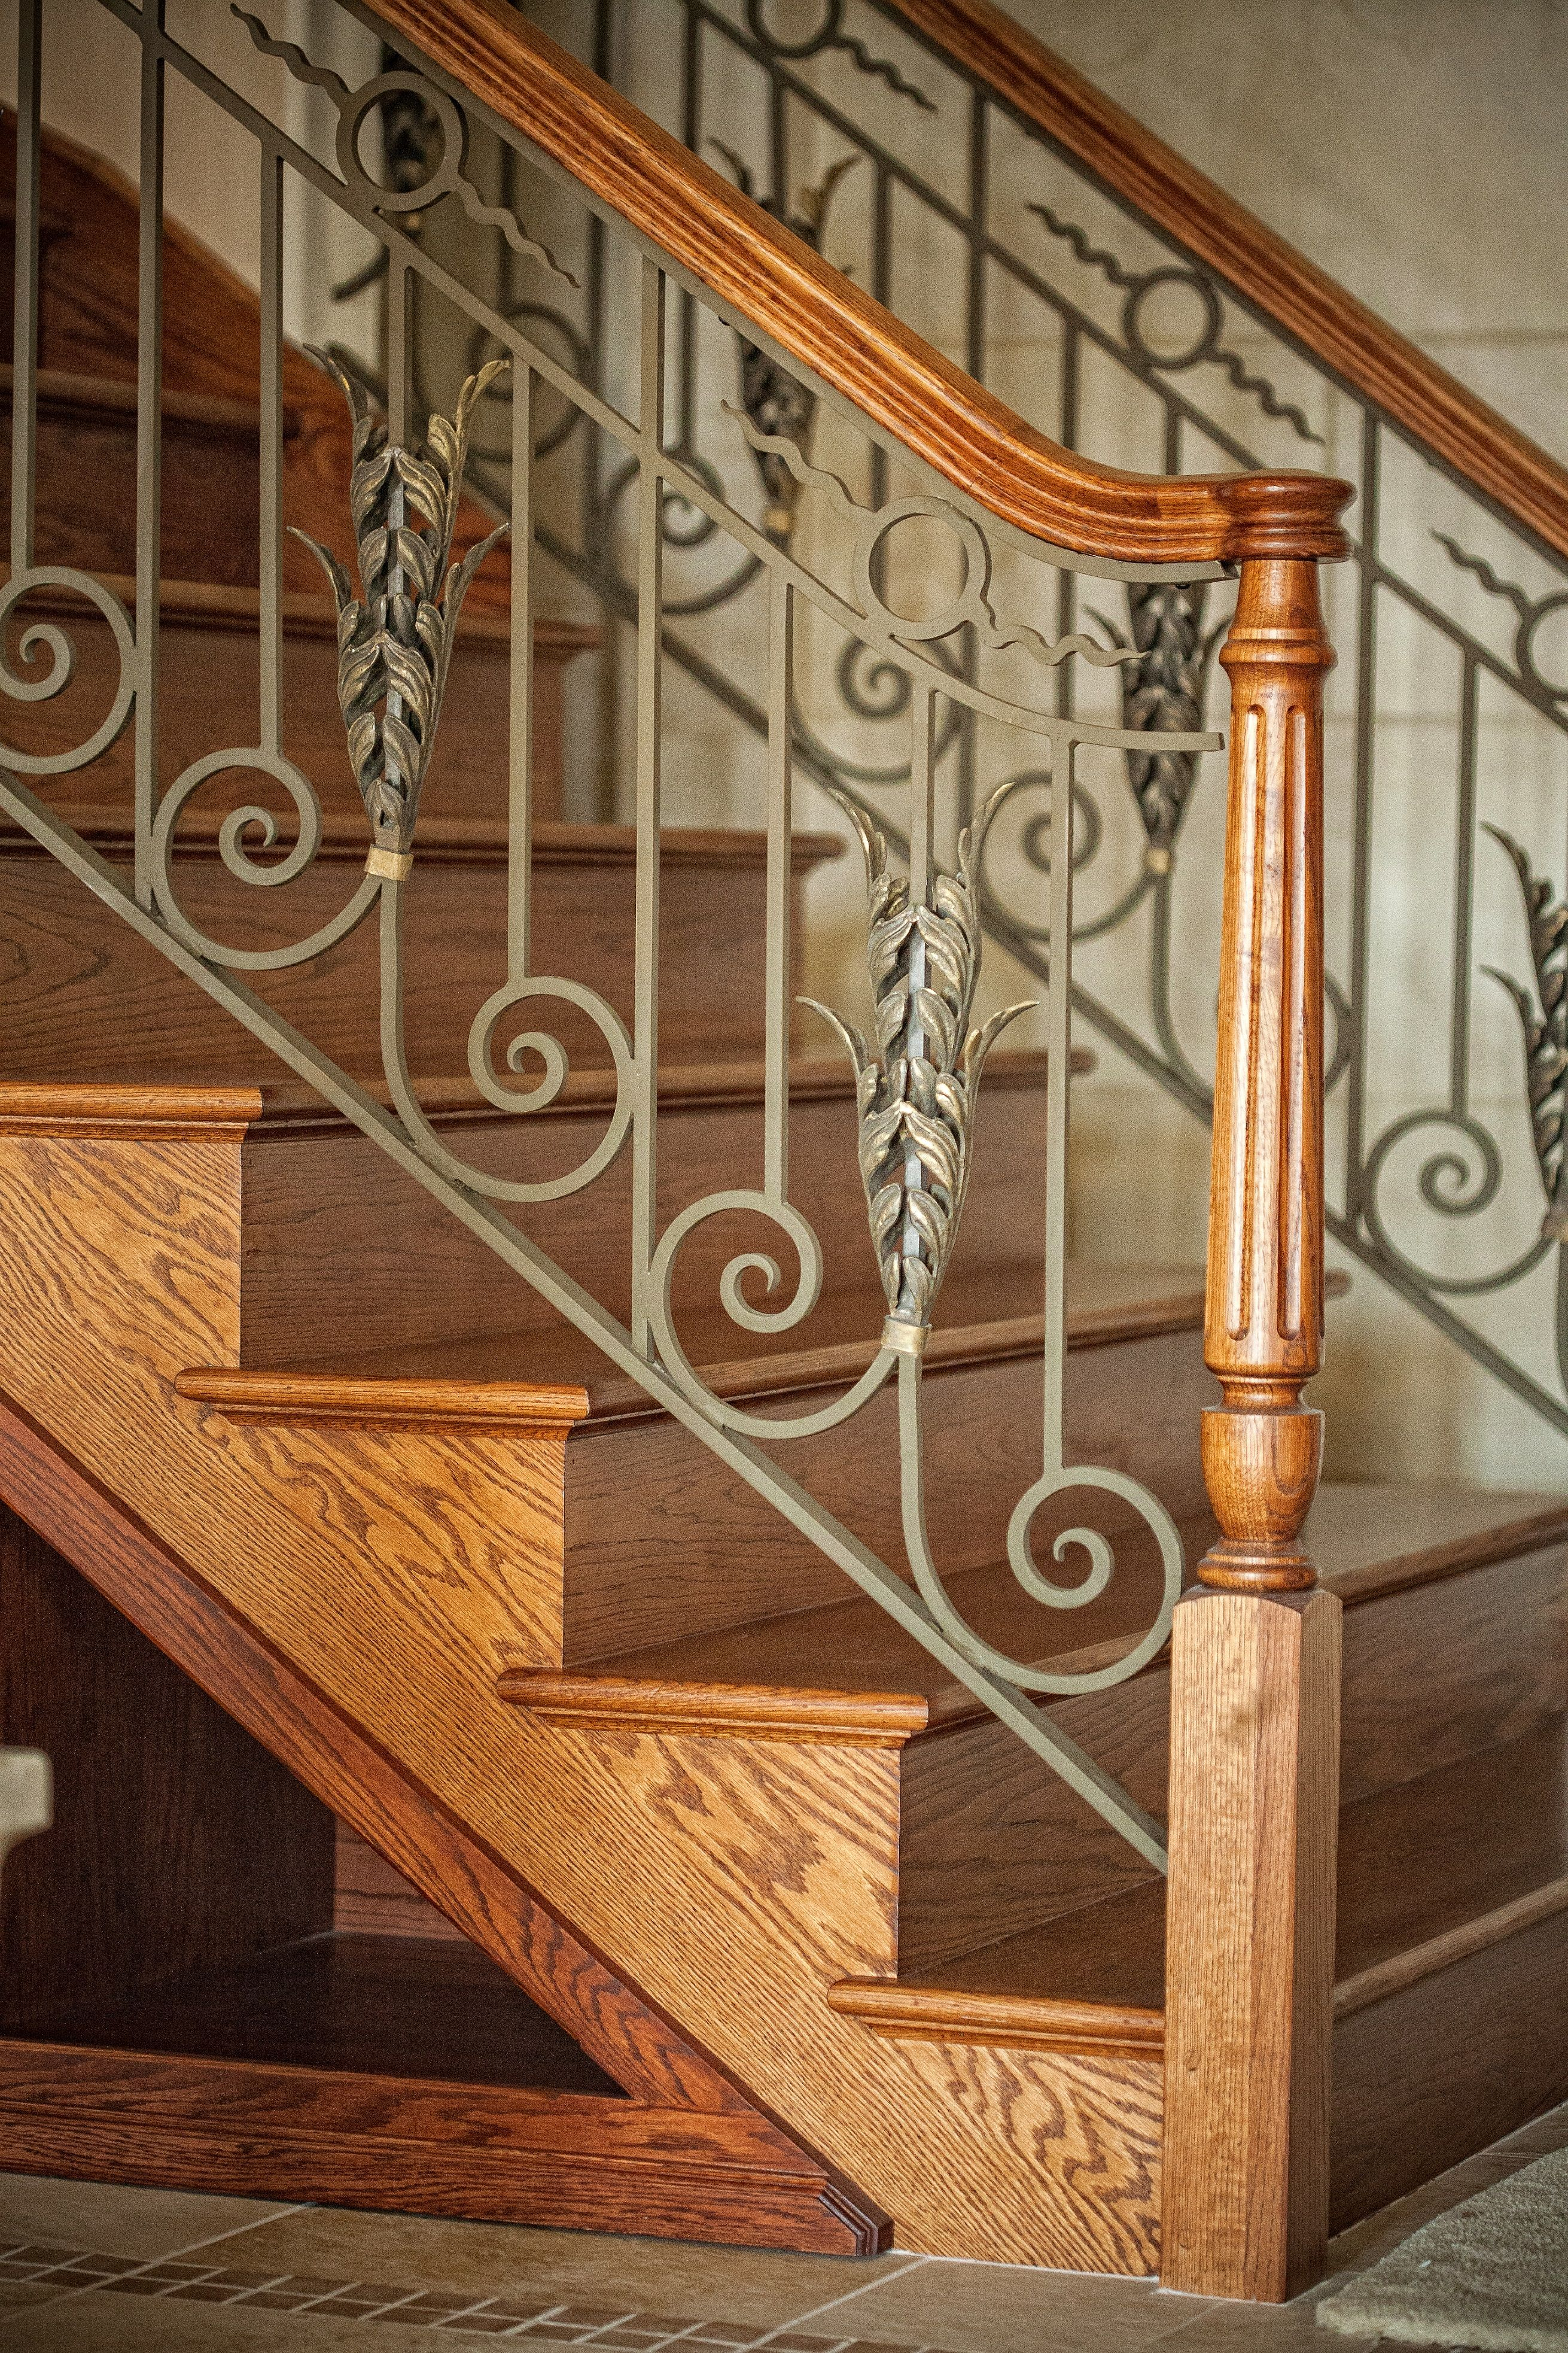 Wood And Iron With Custom Color And Acanthus Leaves To